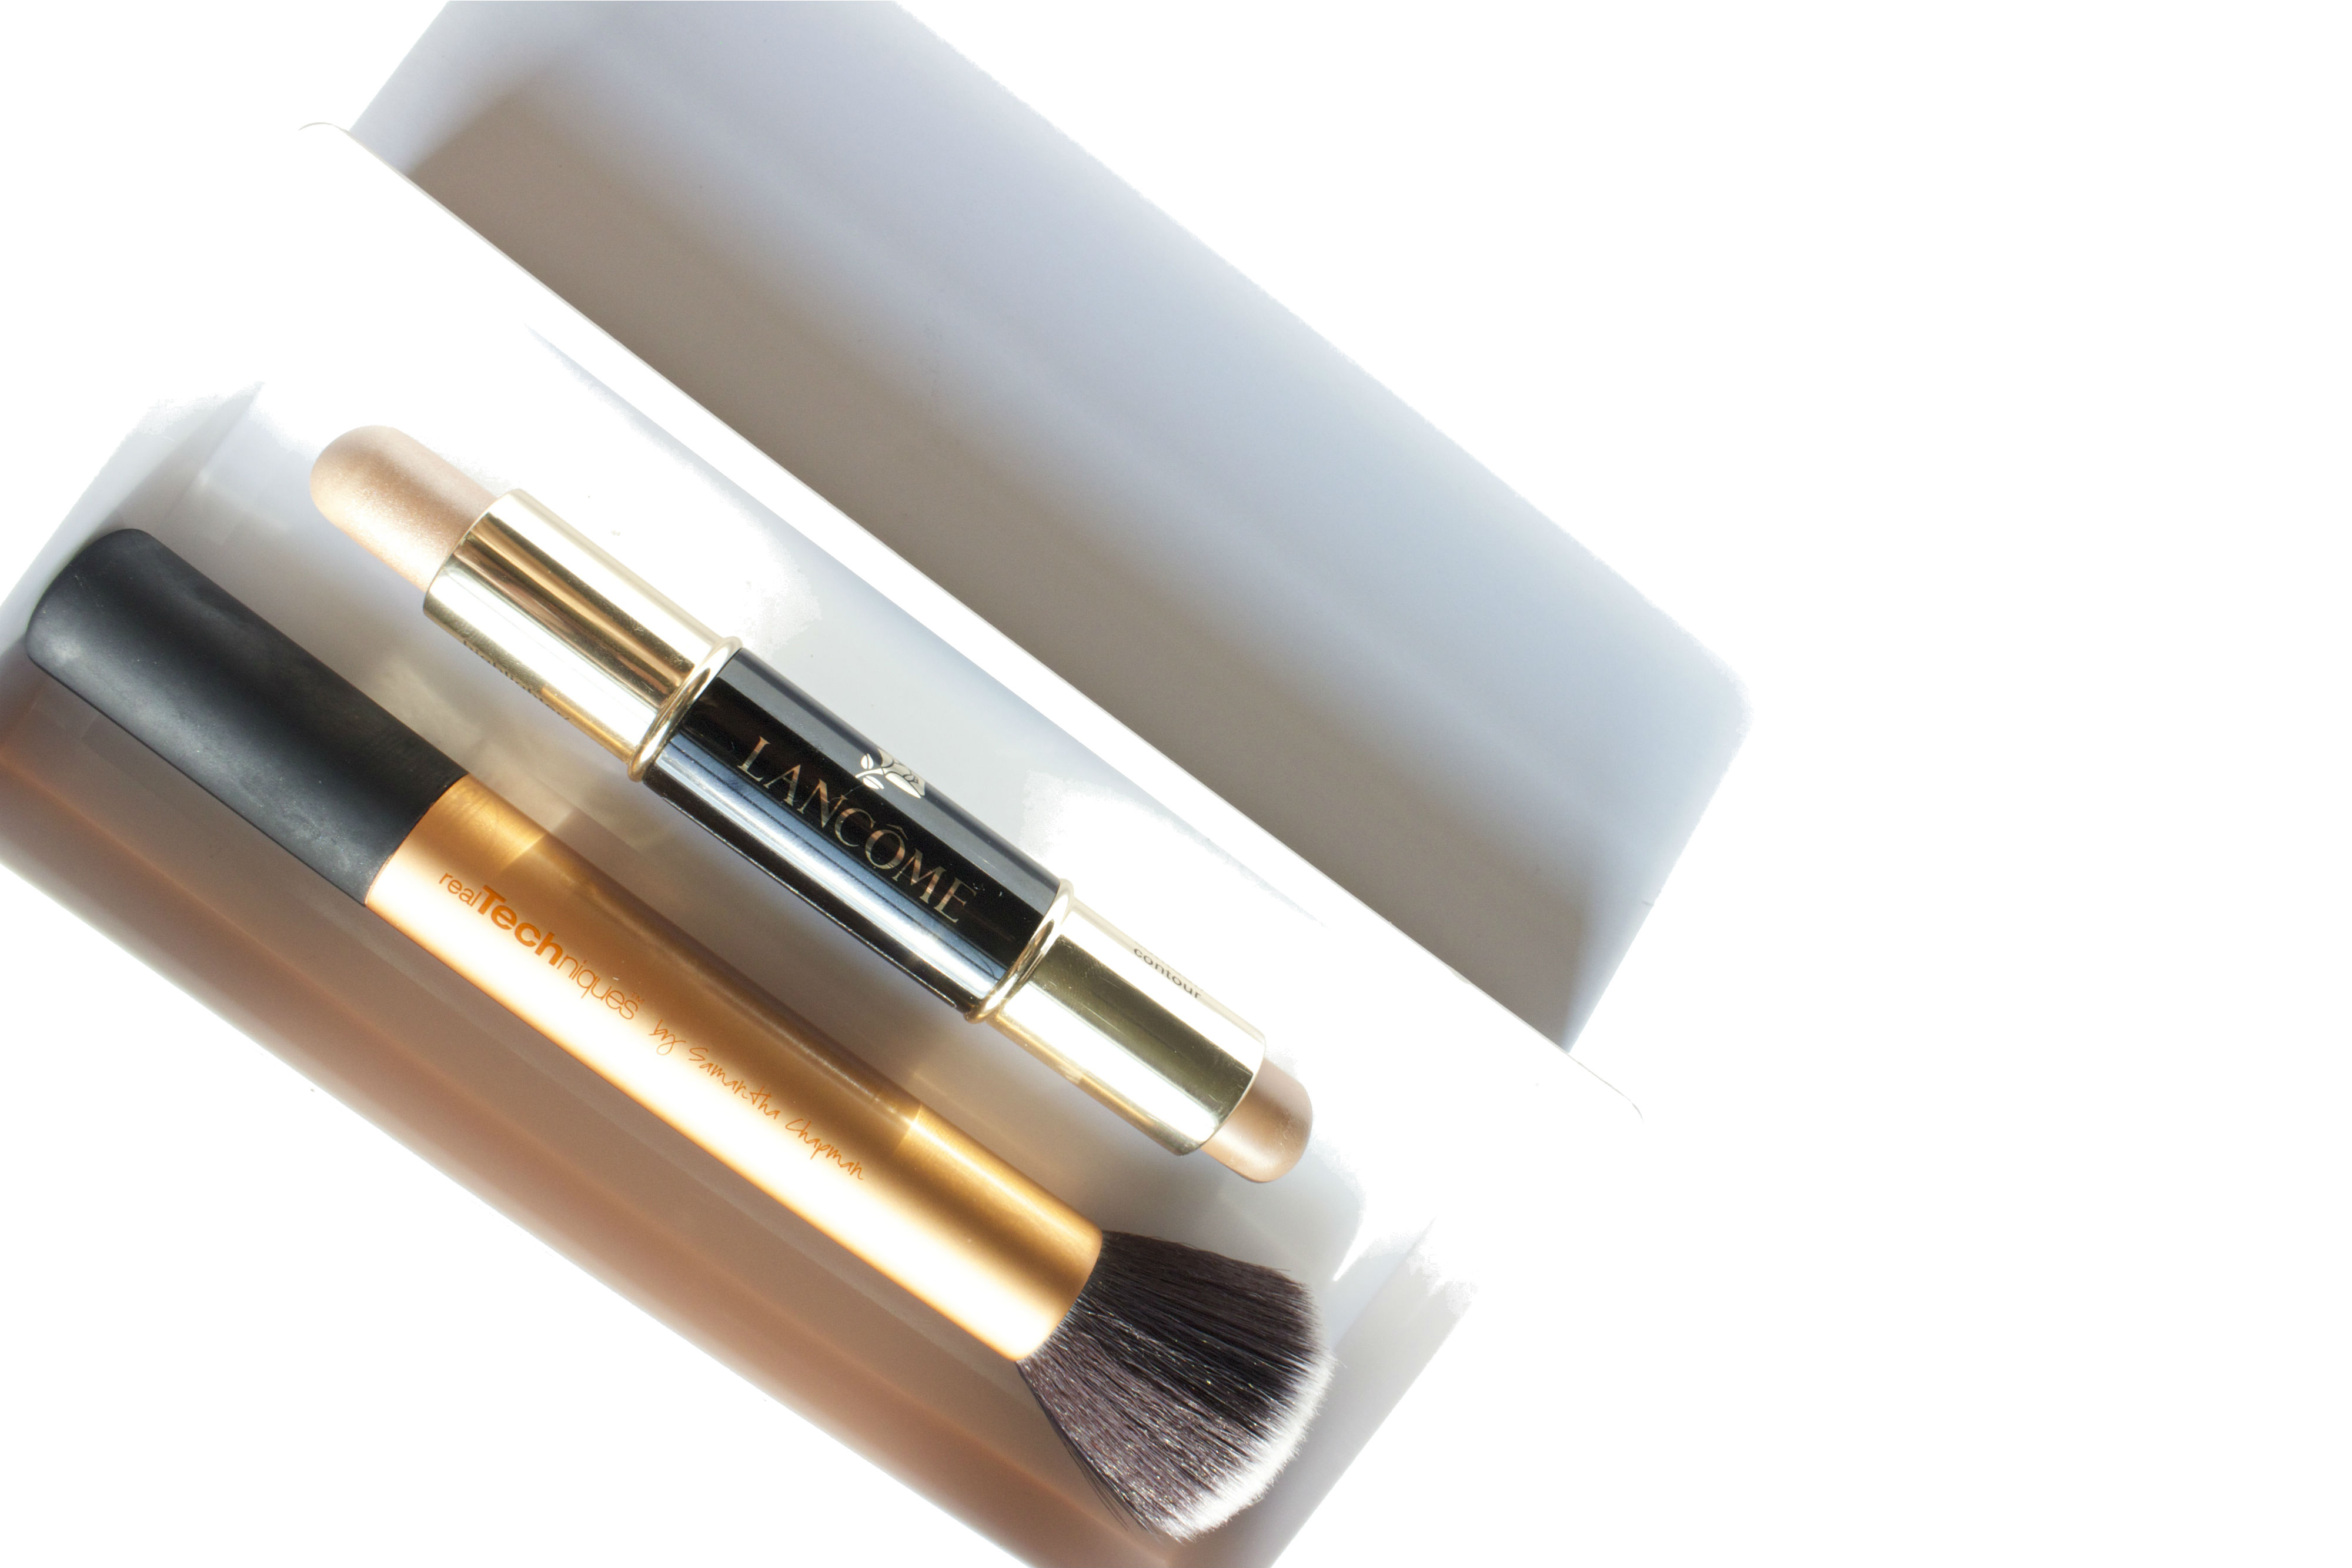 Lancôme LE DUO - Contour & Highlighter Stick Review Brighterdarling.com